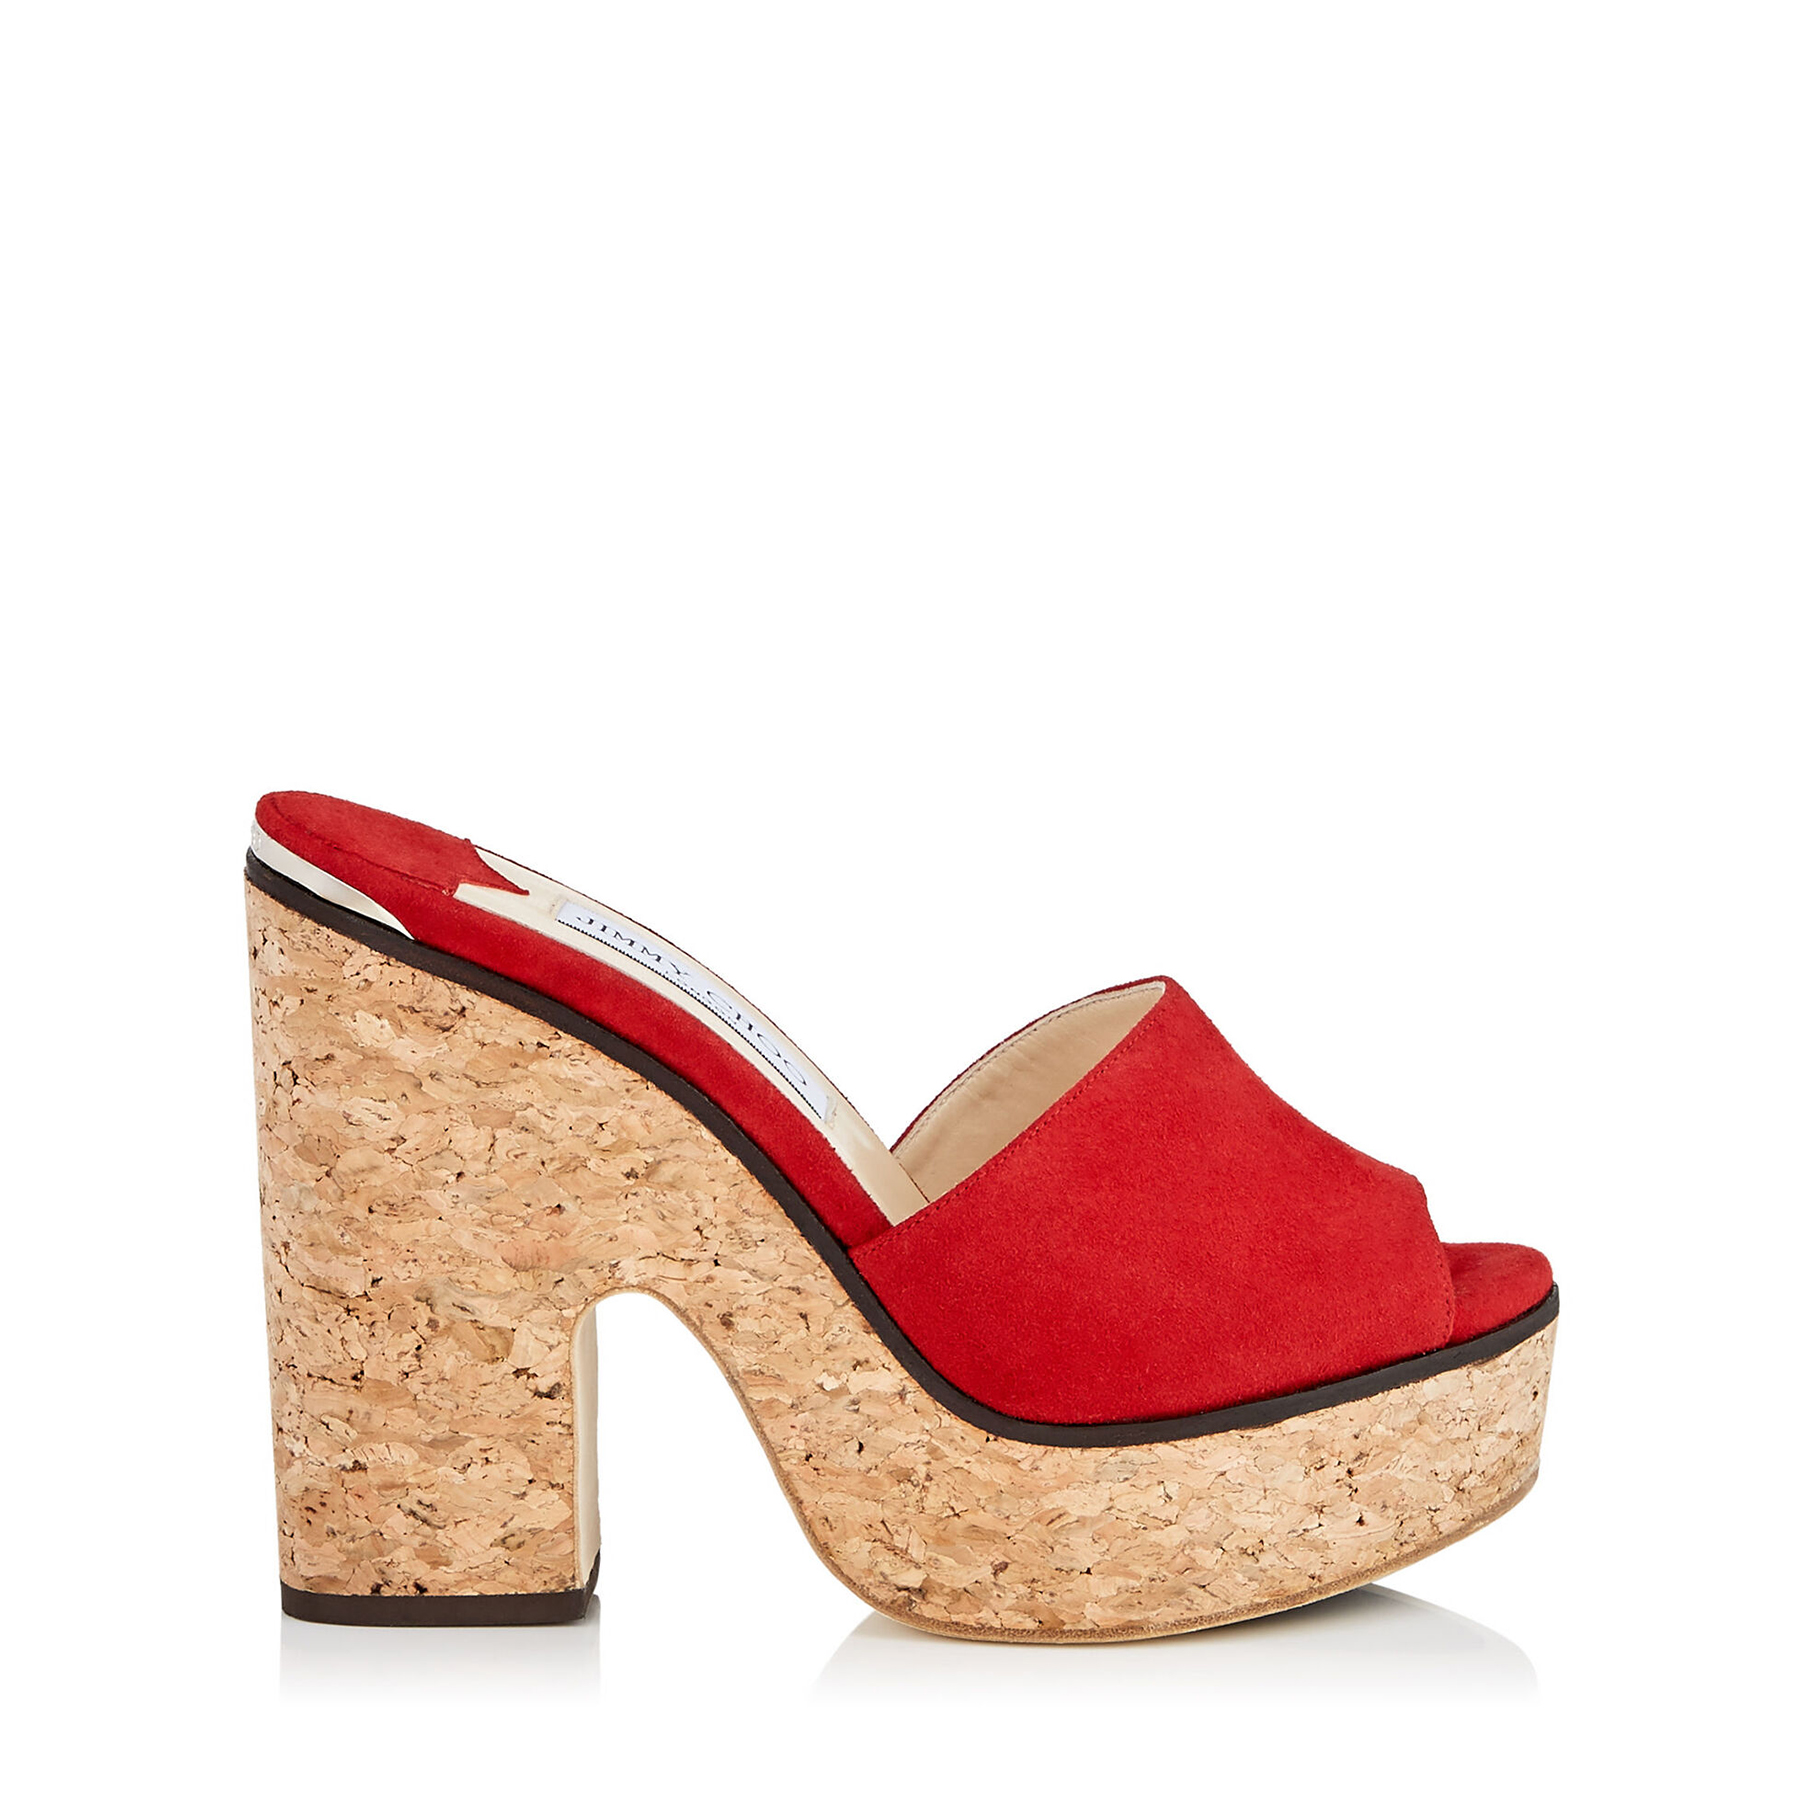 DEEDEE 125 Red Suede Sandal Wedges by Jimmy Choo